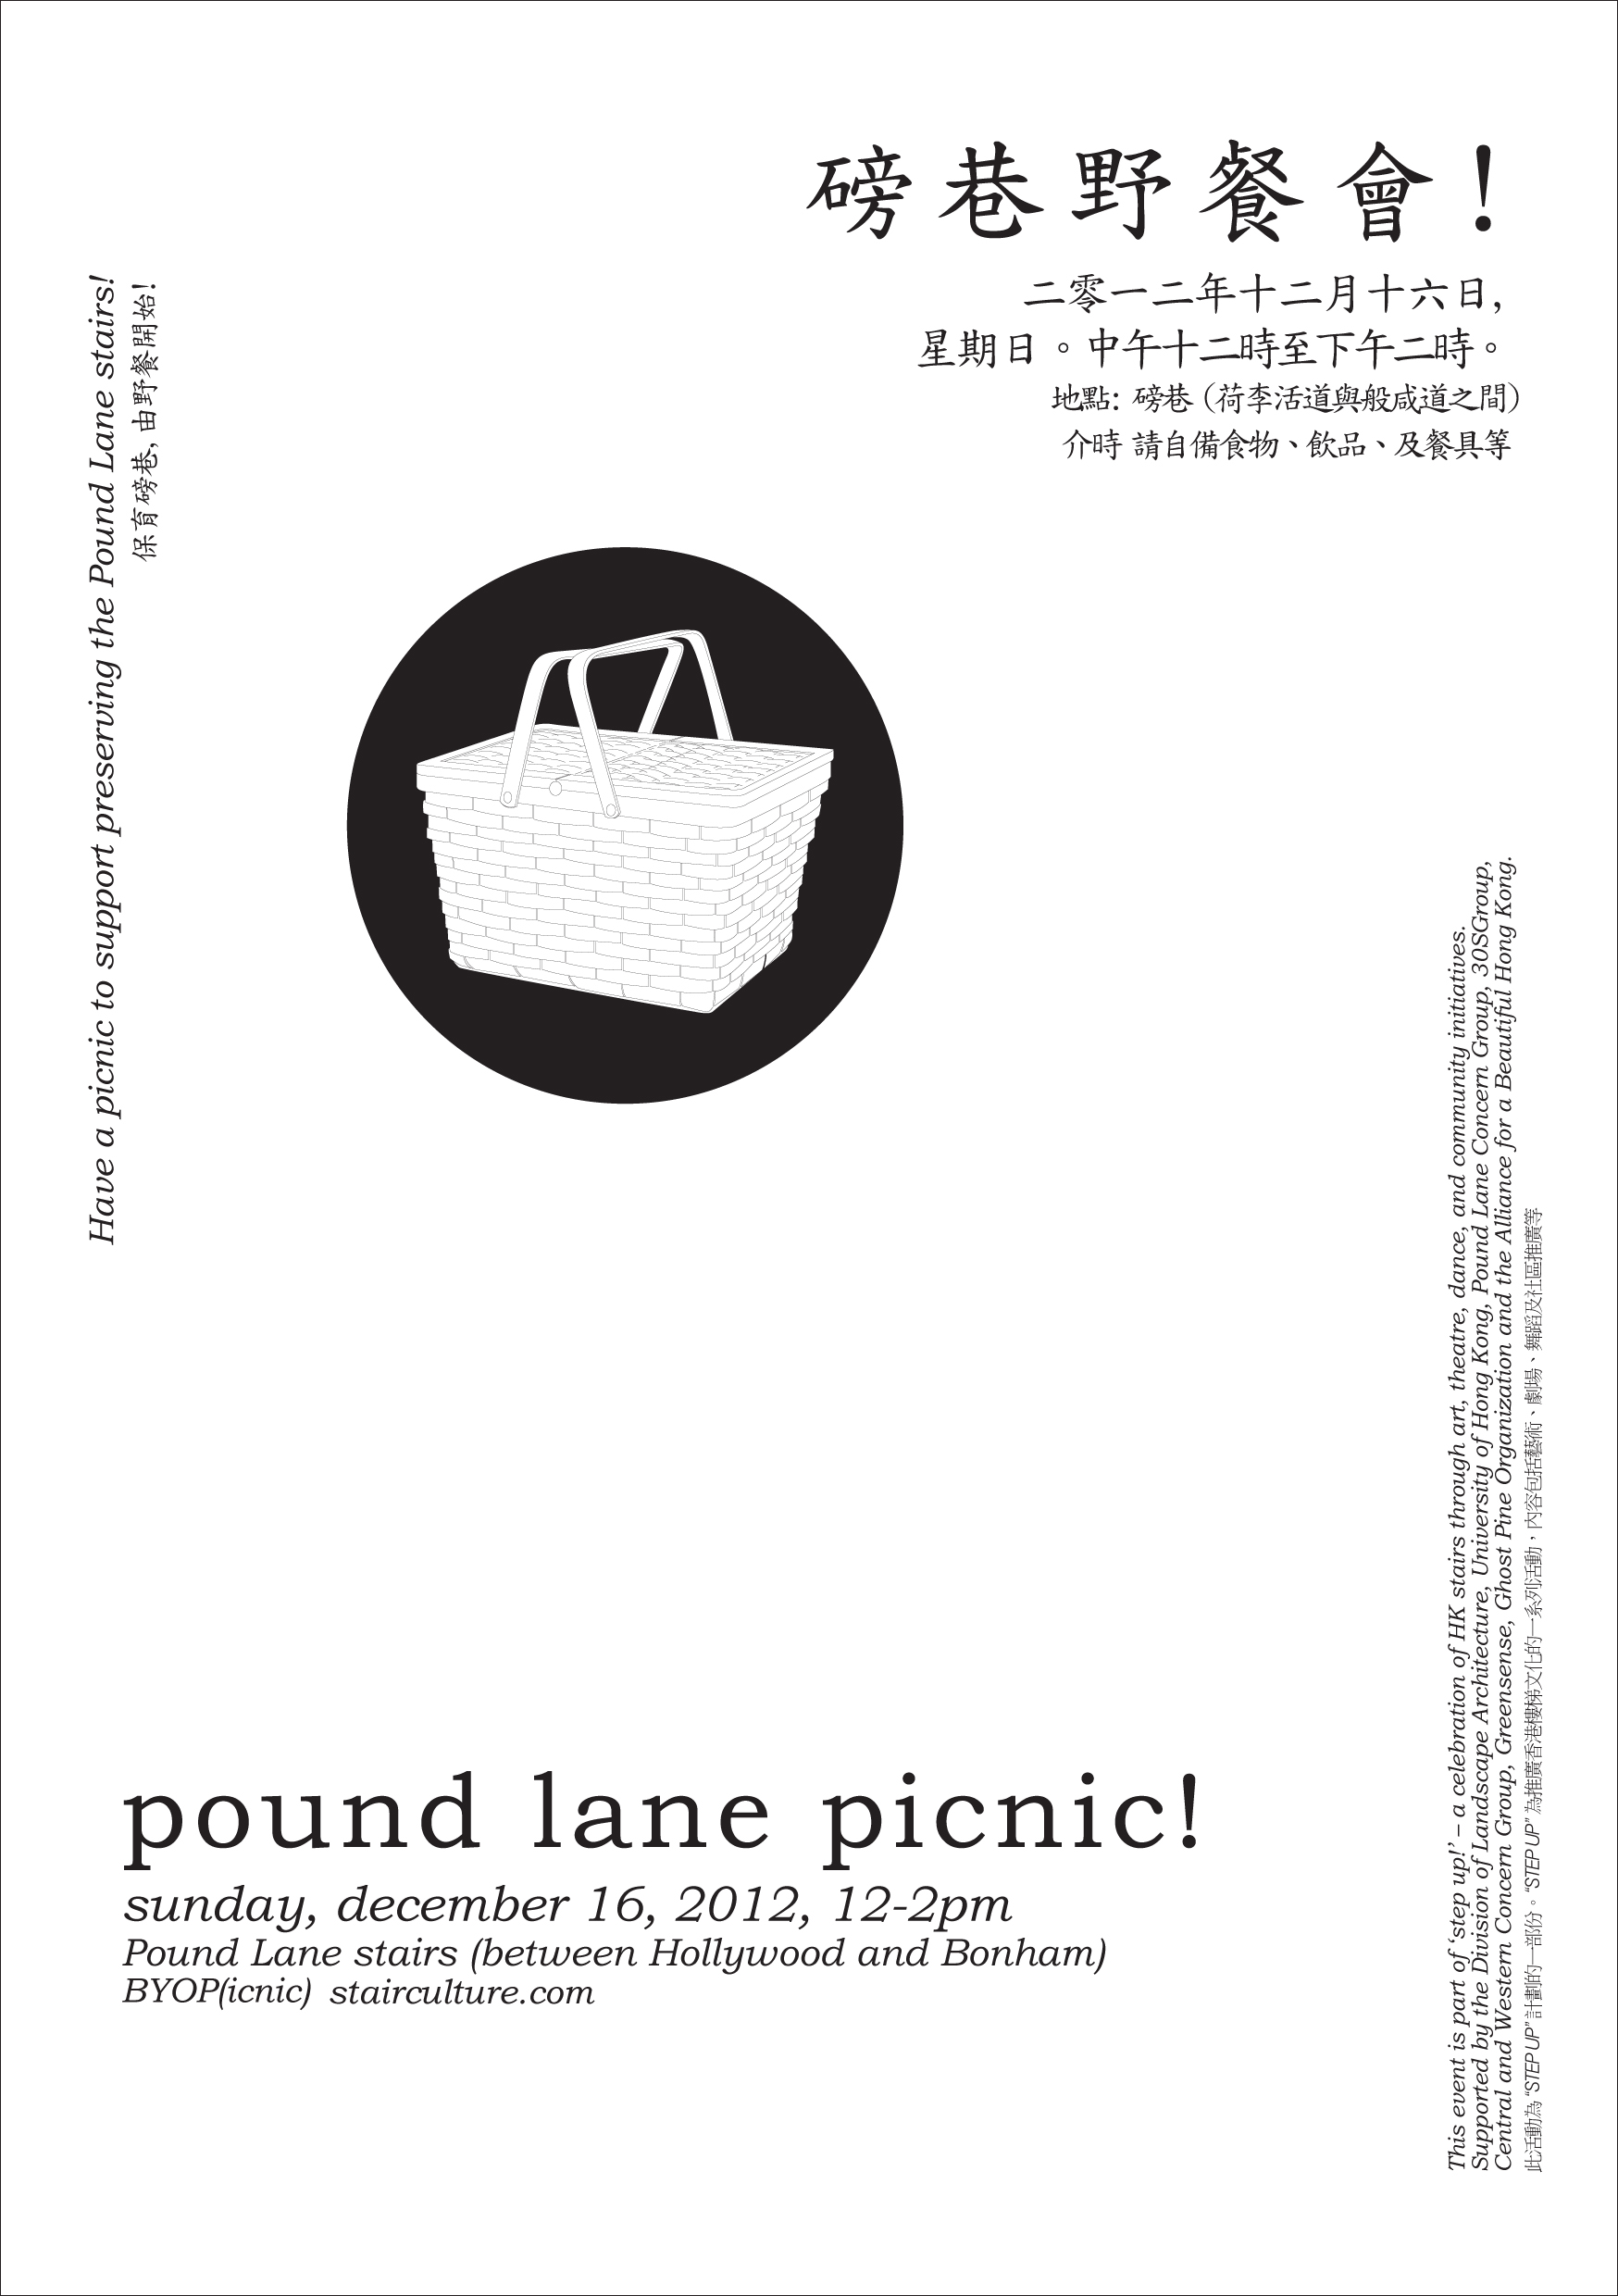 pound lane picnic 2013!